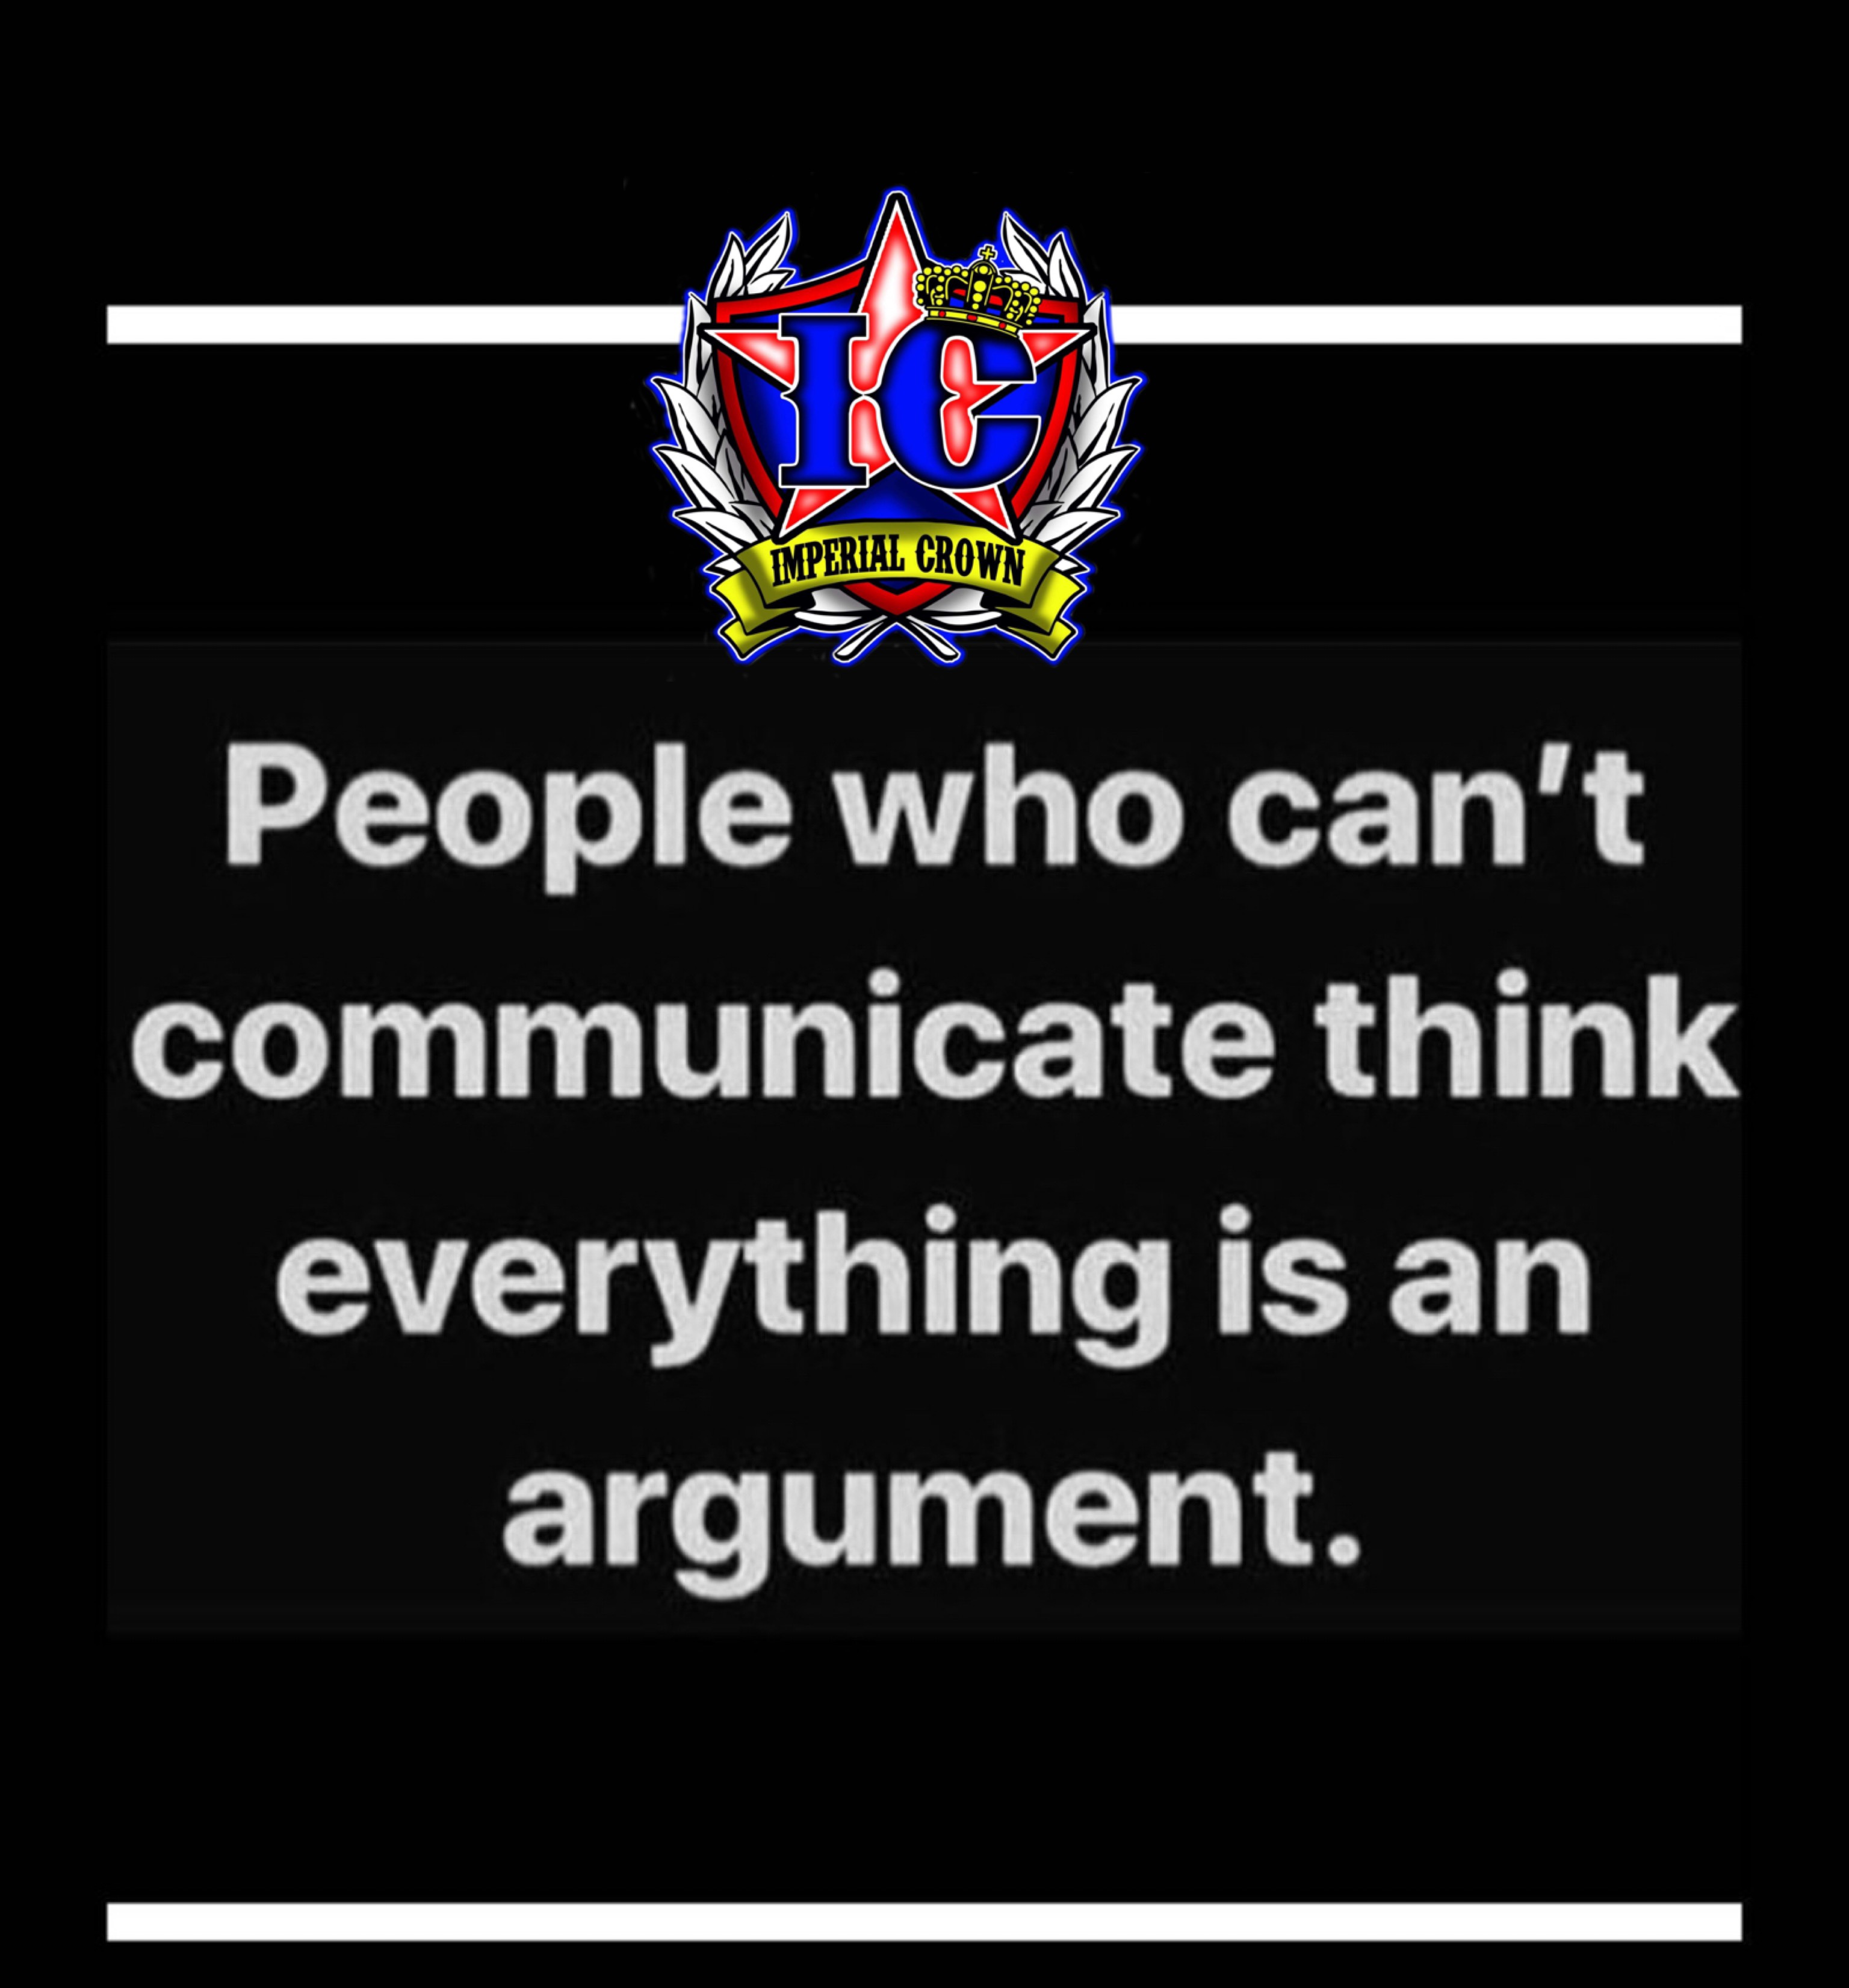 People who can't communicate think everything is an argument